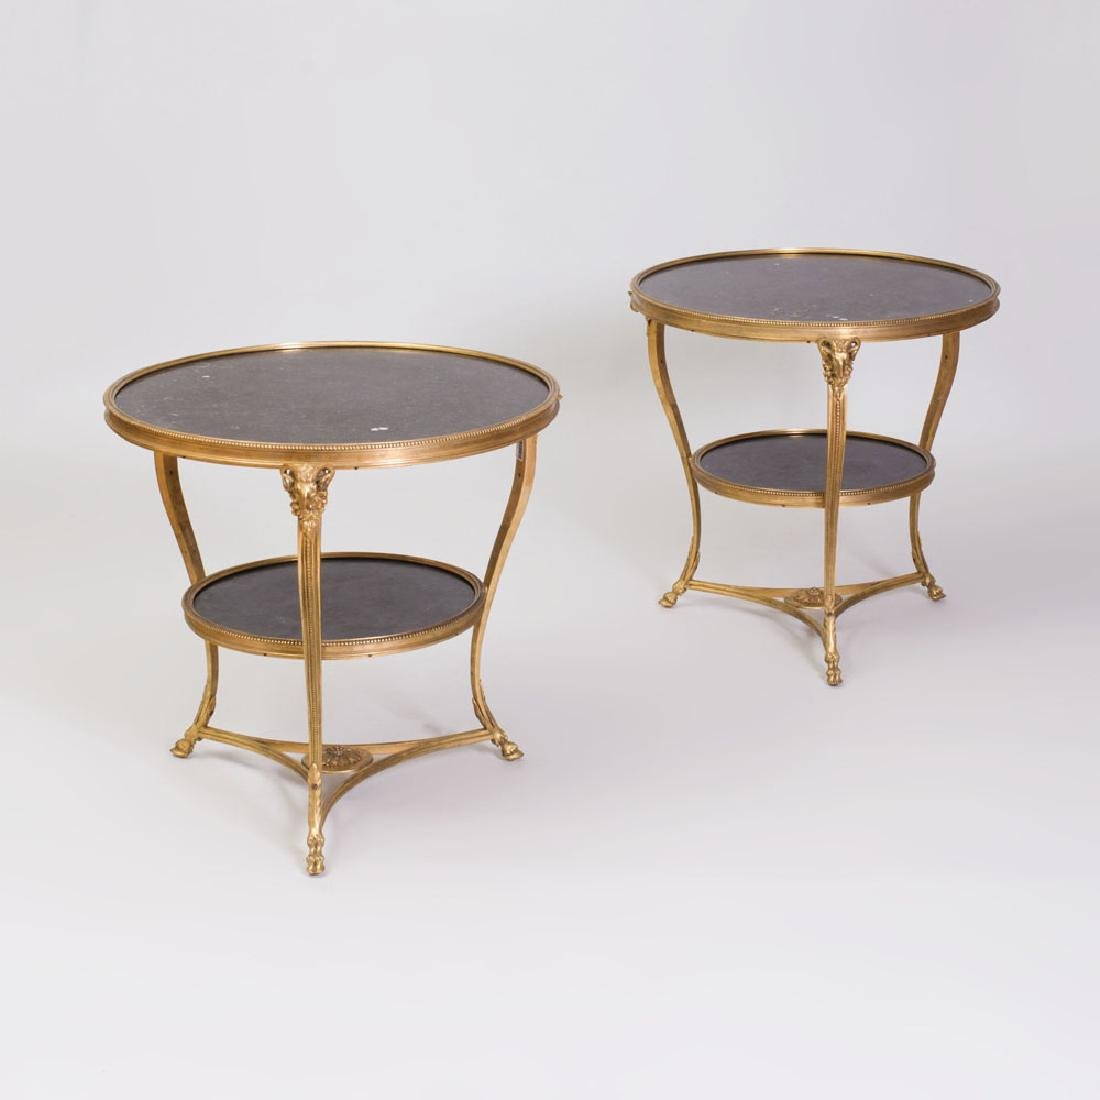 Pair of Louis XVI Style Gilt-Bronze and Fossilized